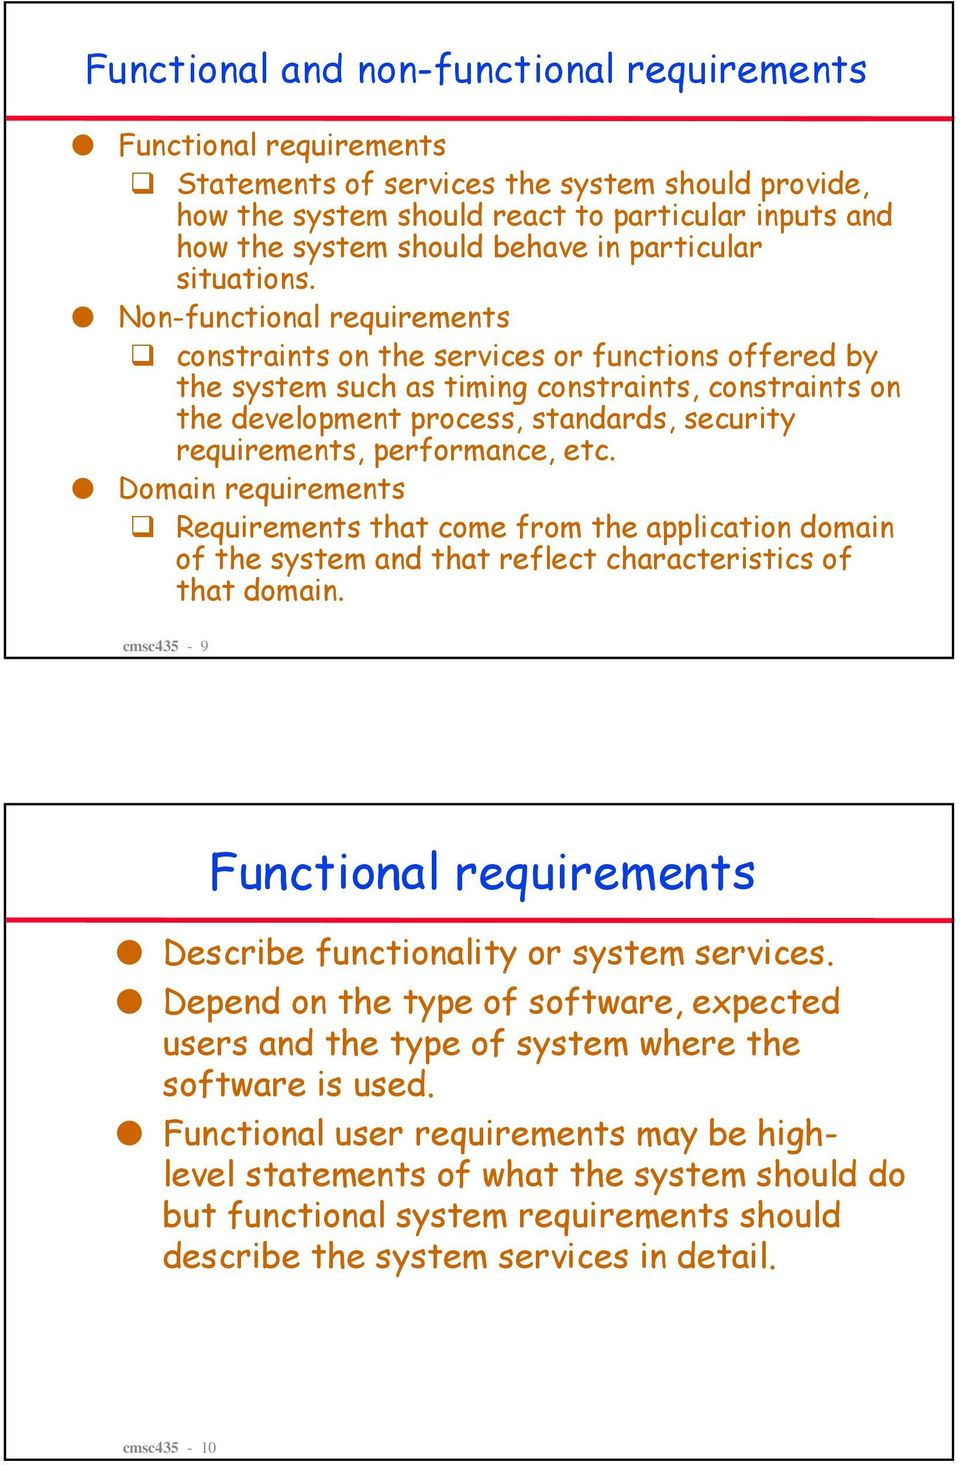 Non-functional requirements constraints on the services or functions offered by the system such as timing constraints, constraints on the development process, standards, security requirements,